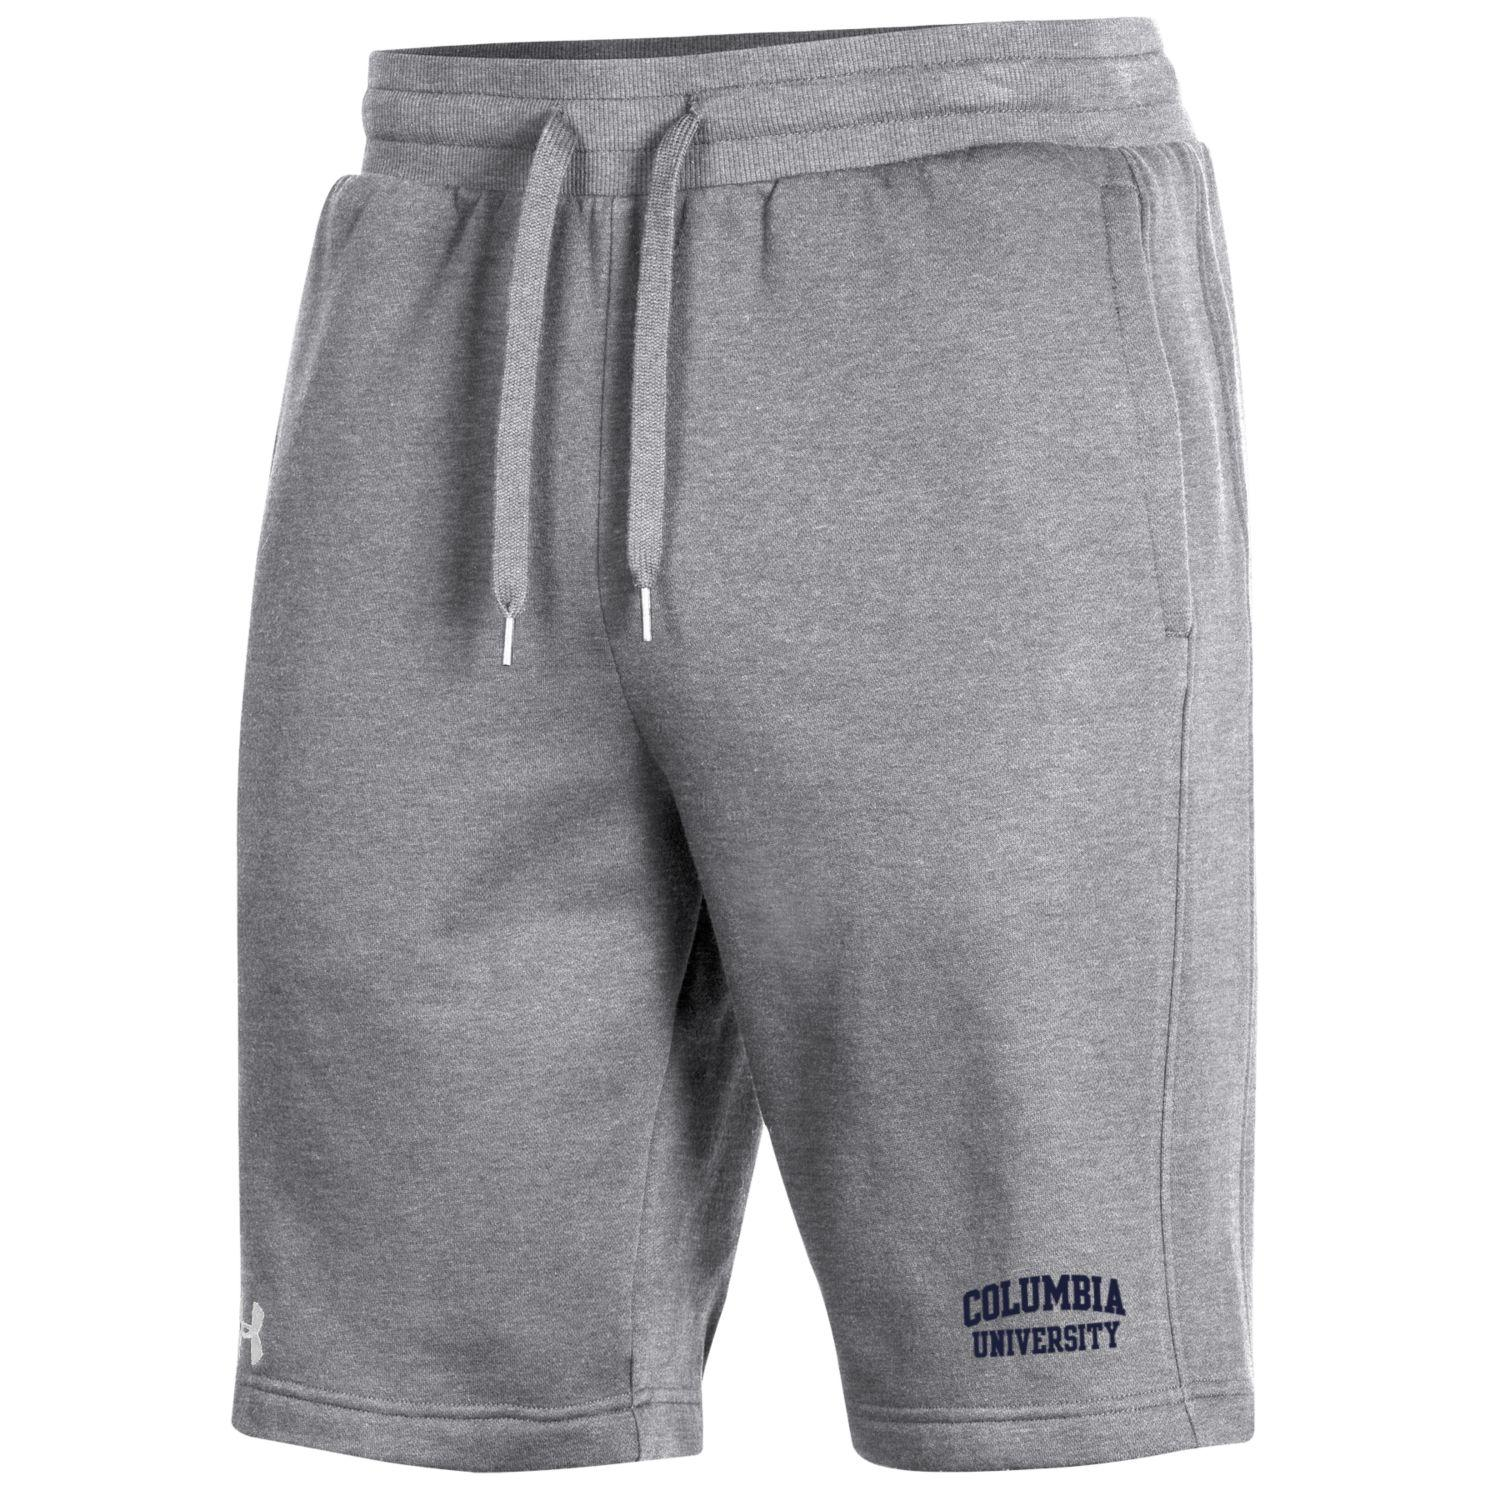 Under Armour All Day Short